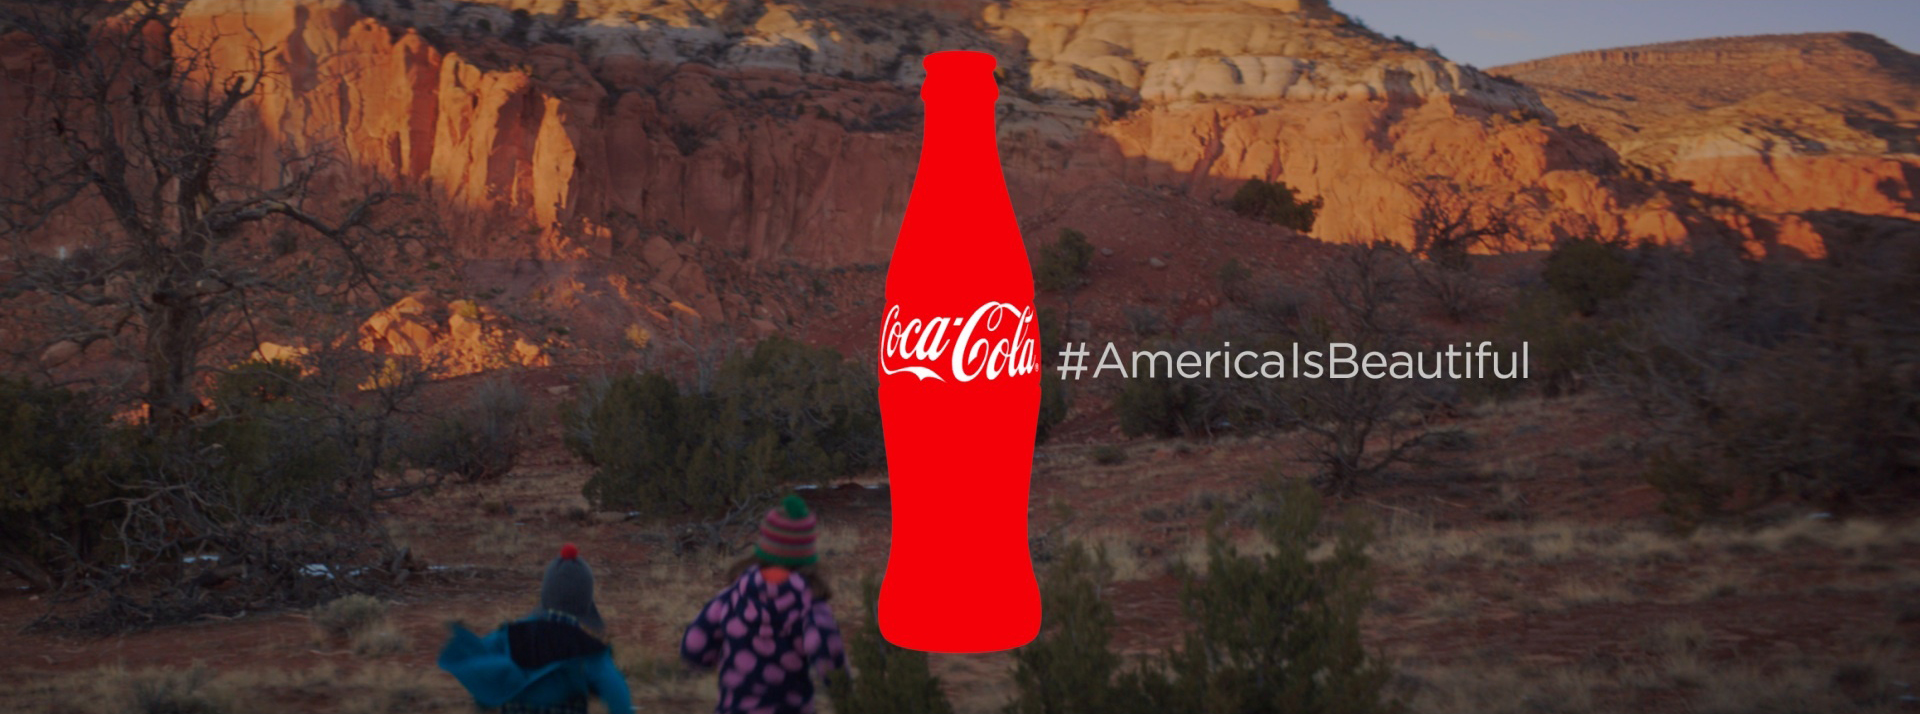 Coca Cola for Beautiful Multilingual America The  : cocacolaitsbeautiful1 from theinspirationroom.com size 1920 x 714 jpeg 683kB